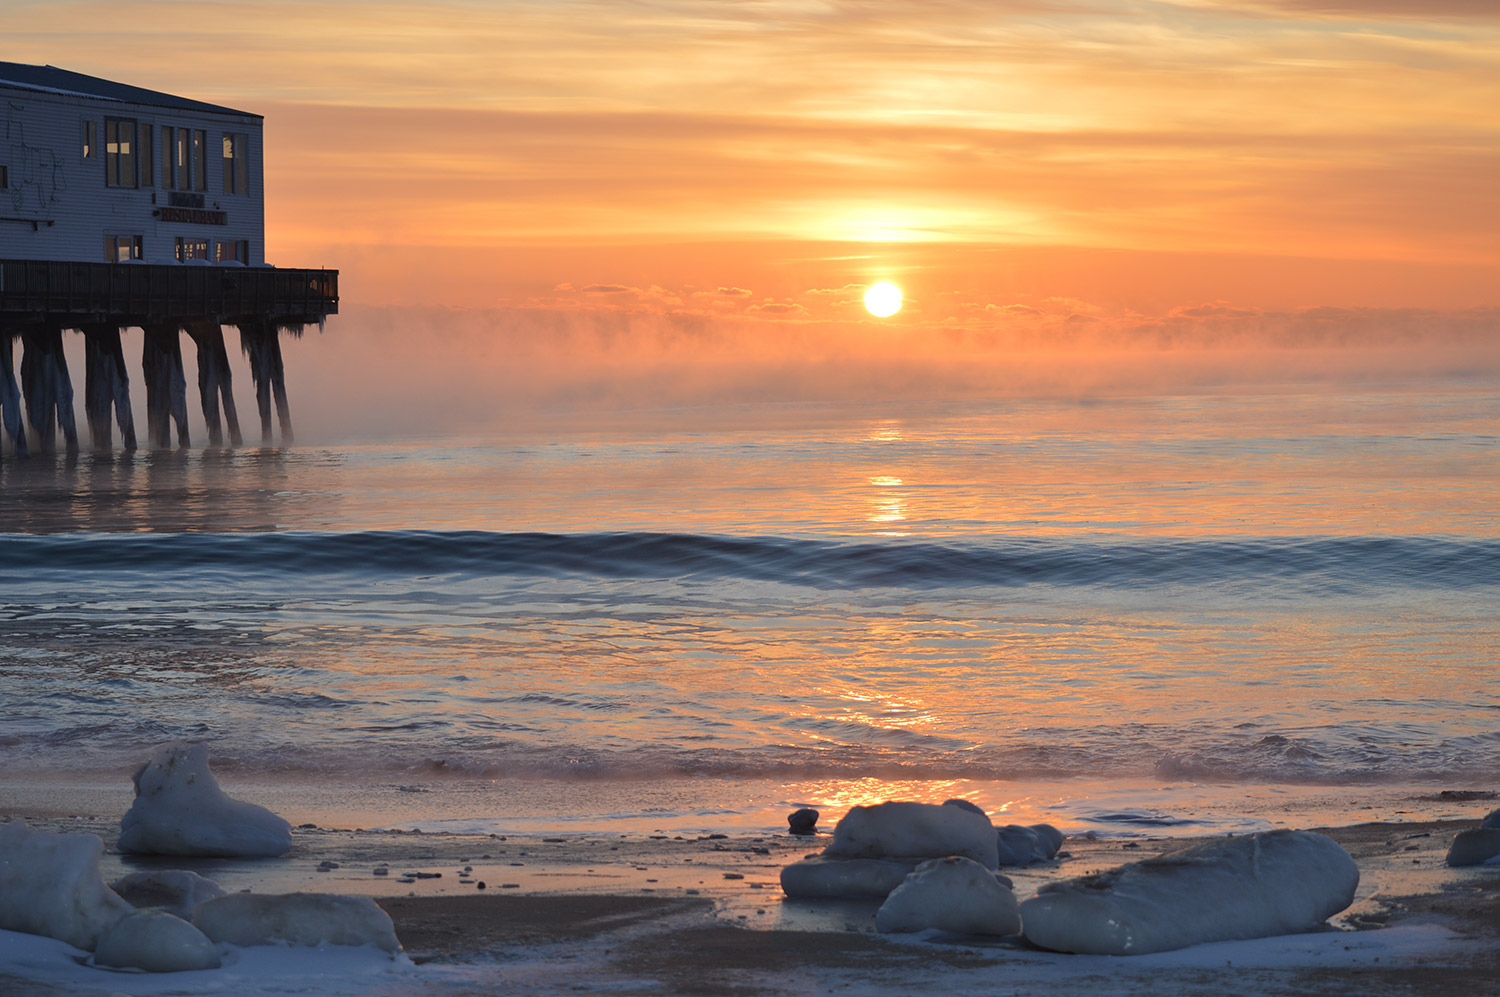 The sun's rising a little earlier each day at Old Orchard Beach, but swimming's still months away. By Amy Taylor, who teaches at Blue Point School.